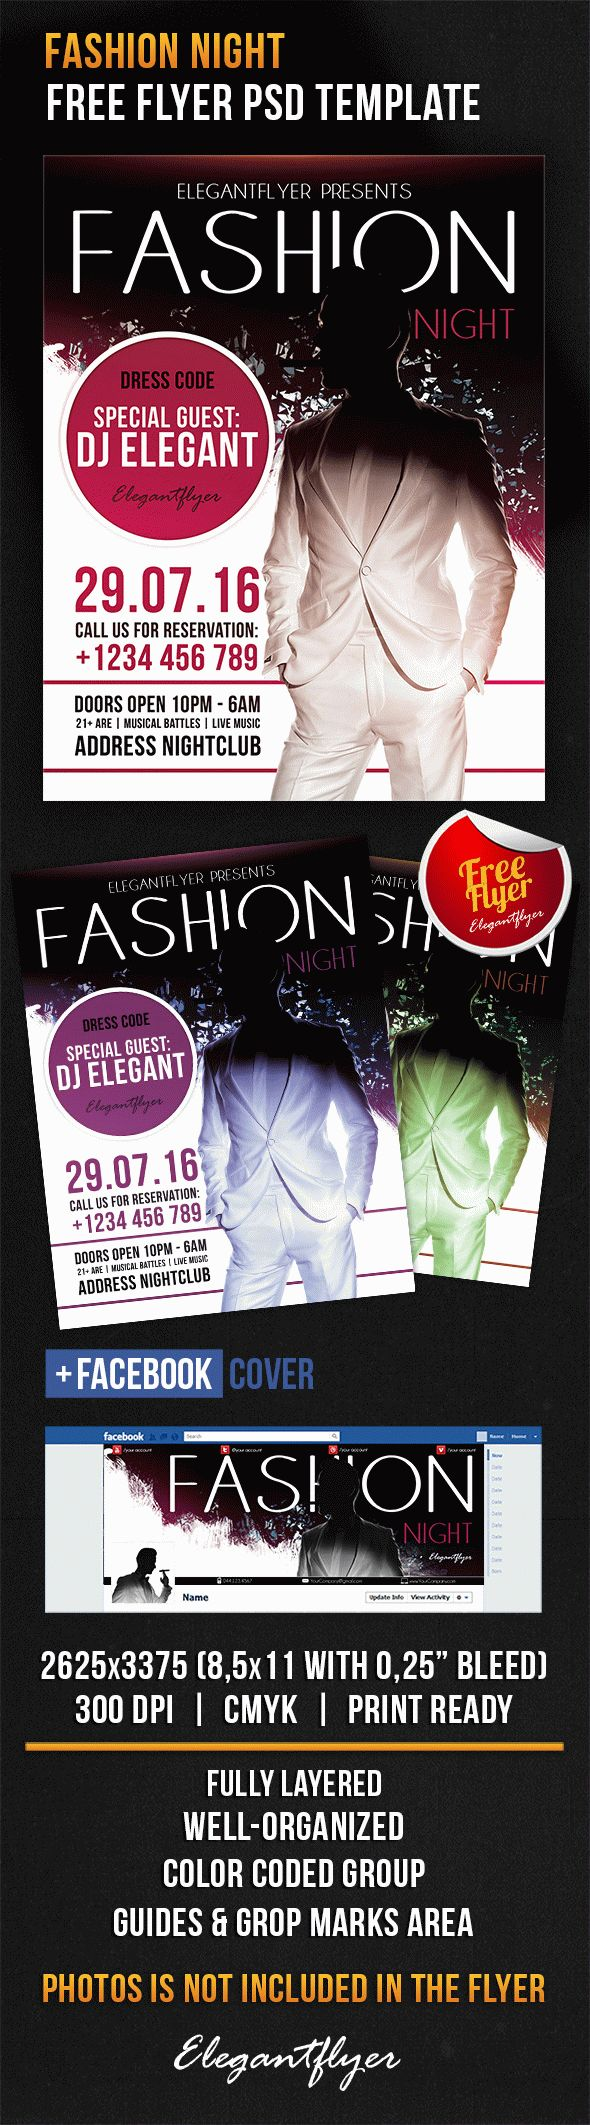 Fashion night free flyer psd template by elegantflyer for Fashion flyers templates for free